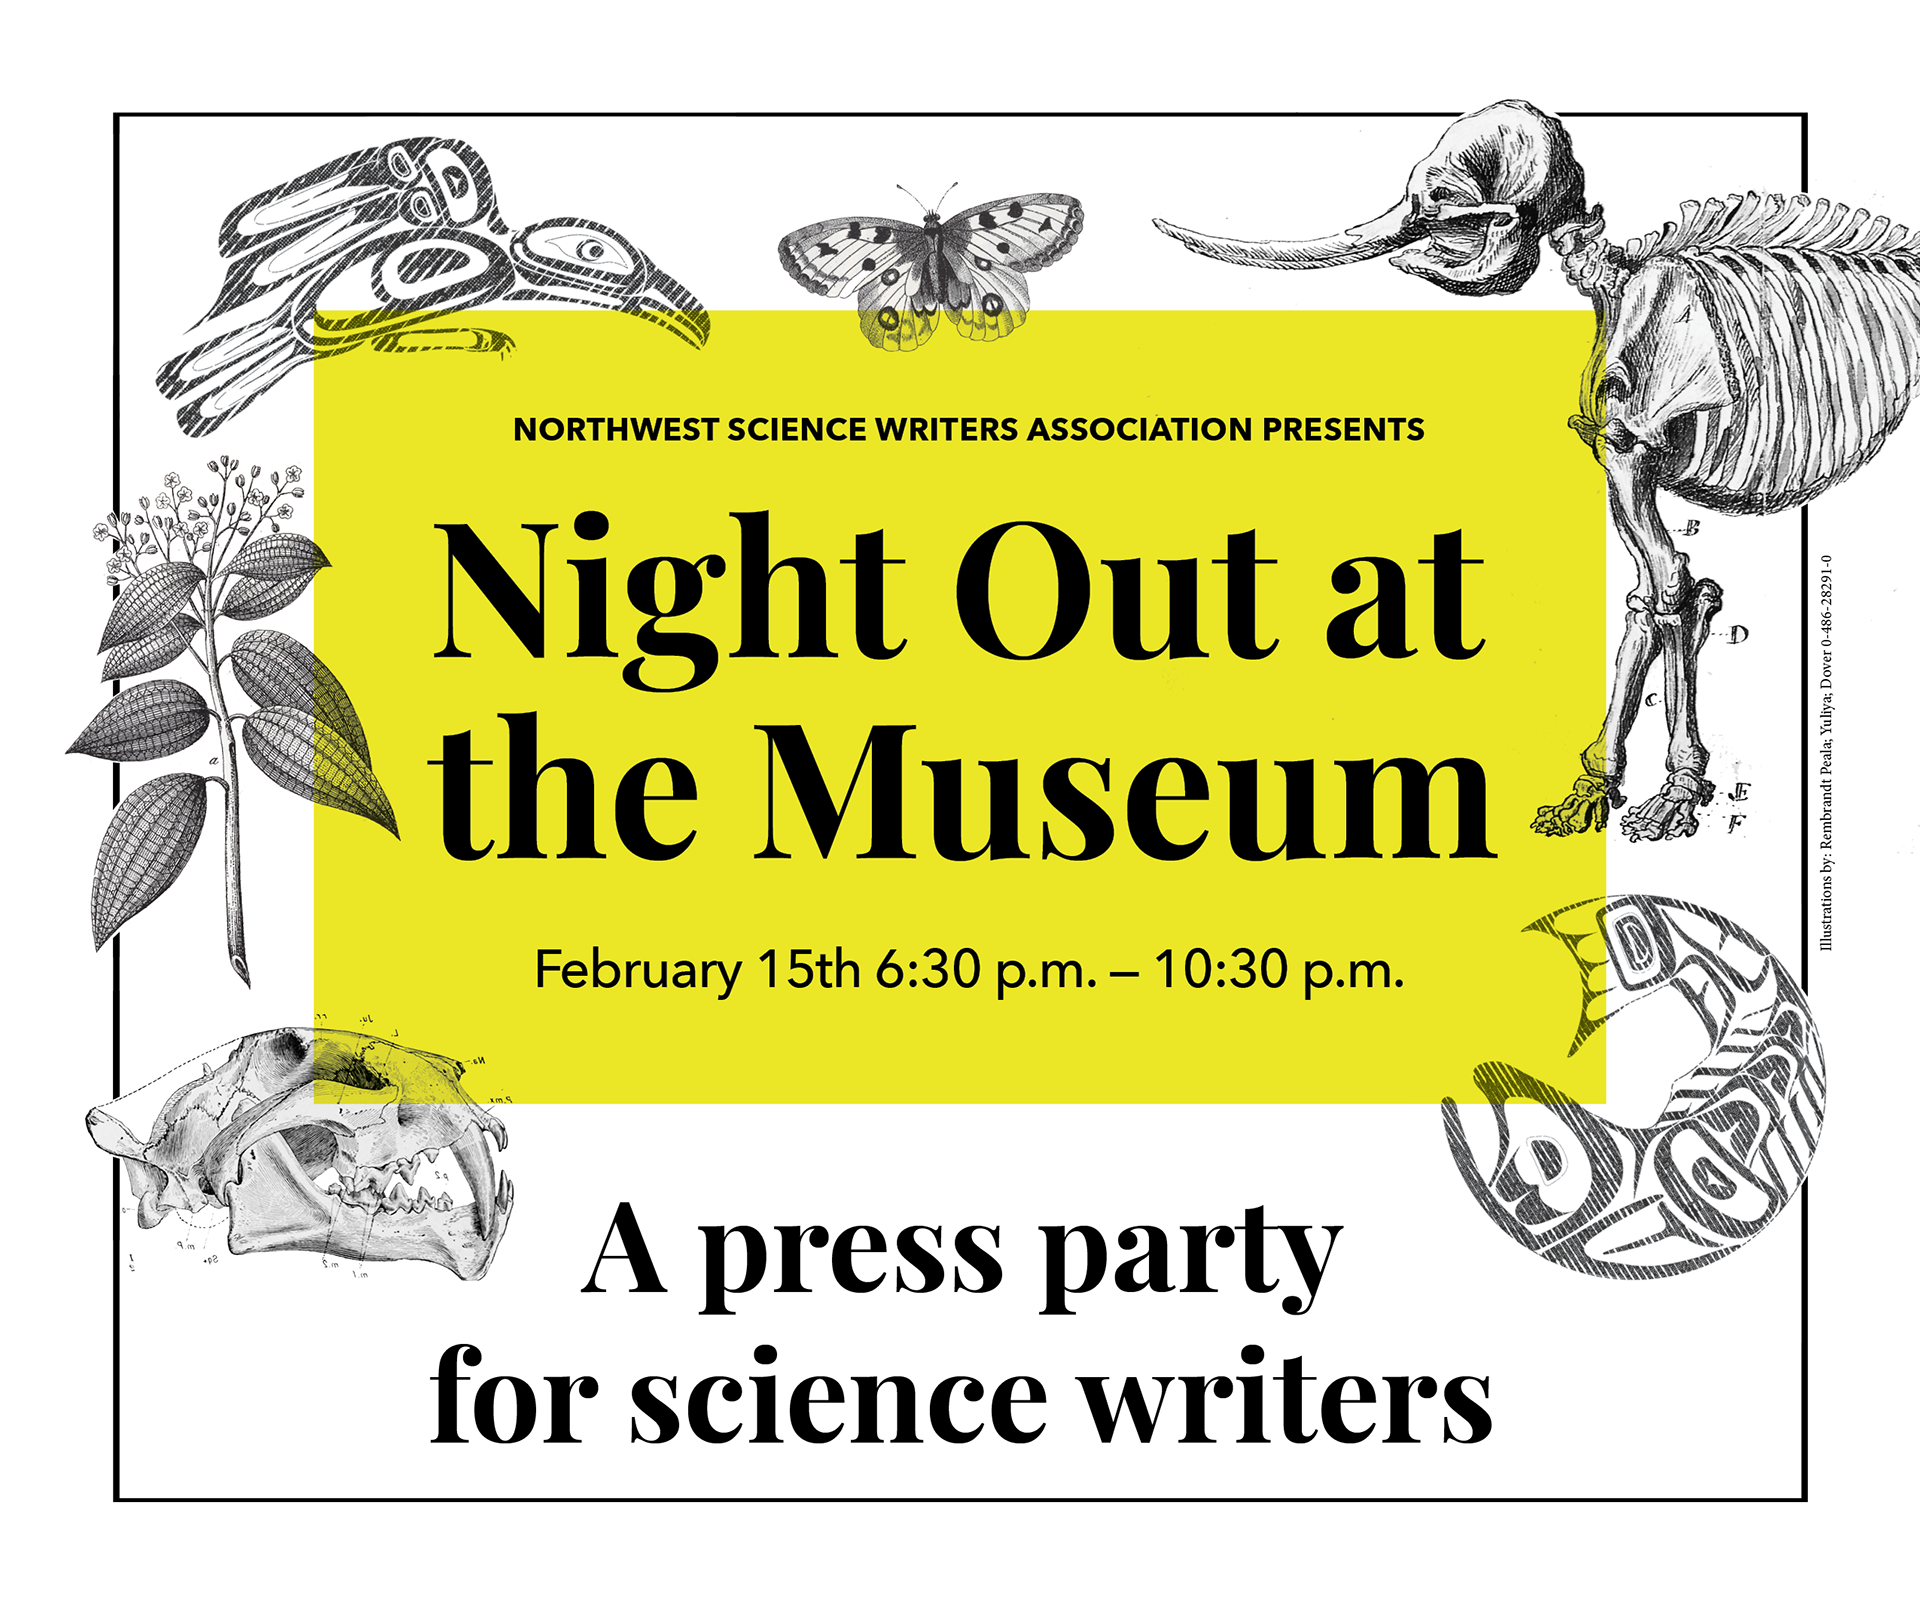 NSWA presents Night Out at the Museum, a press party for science writers